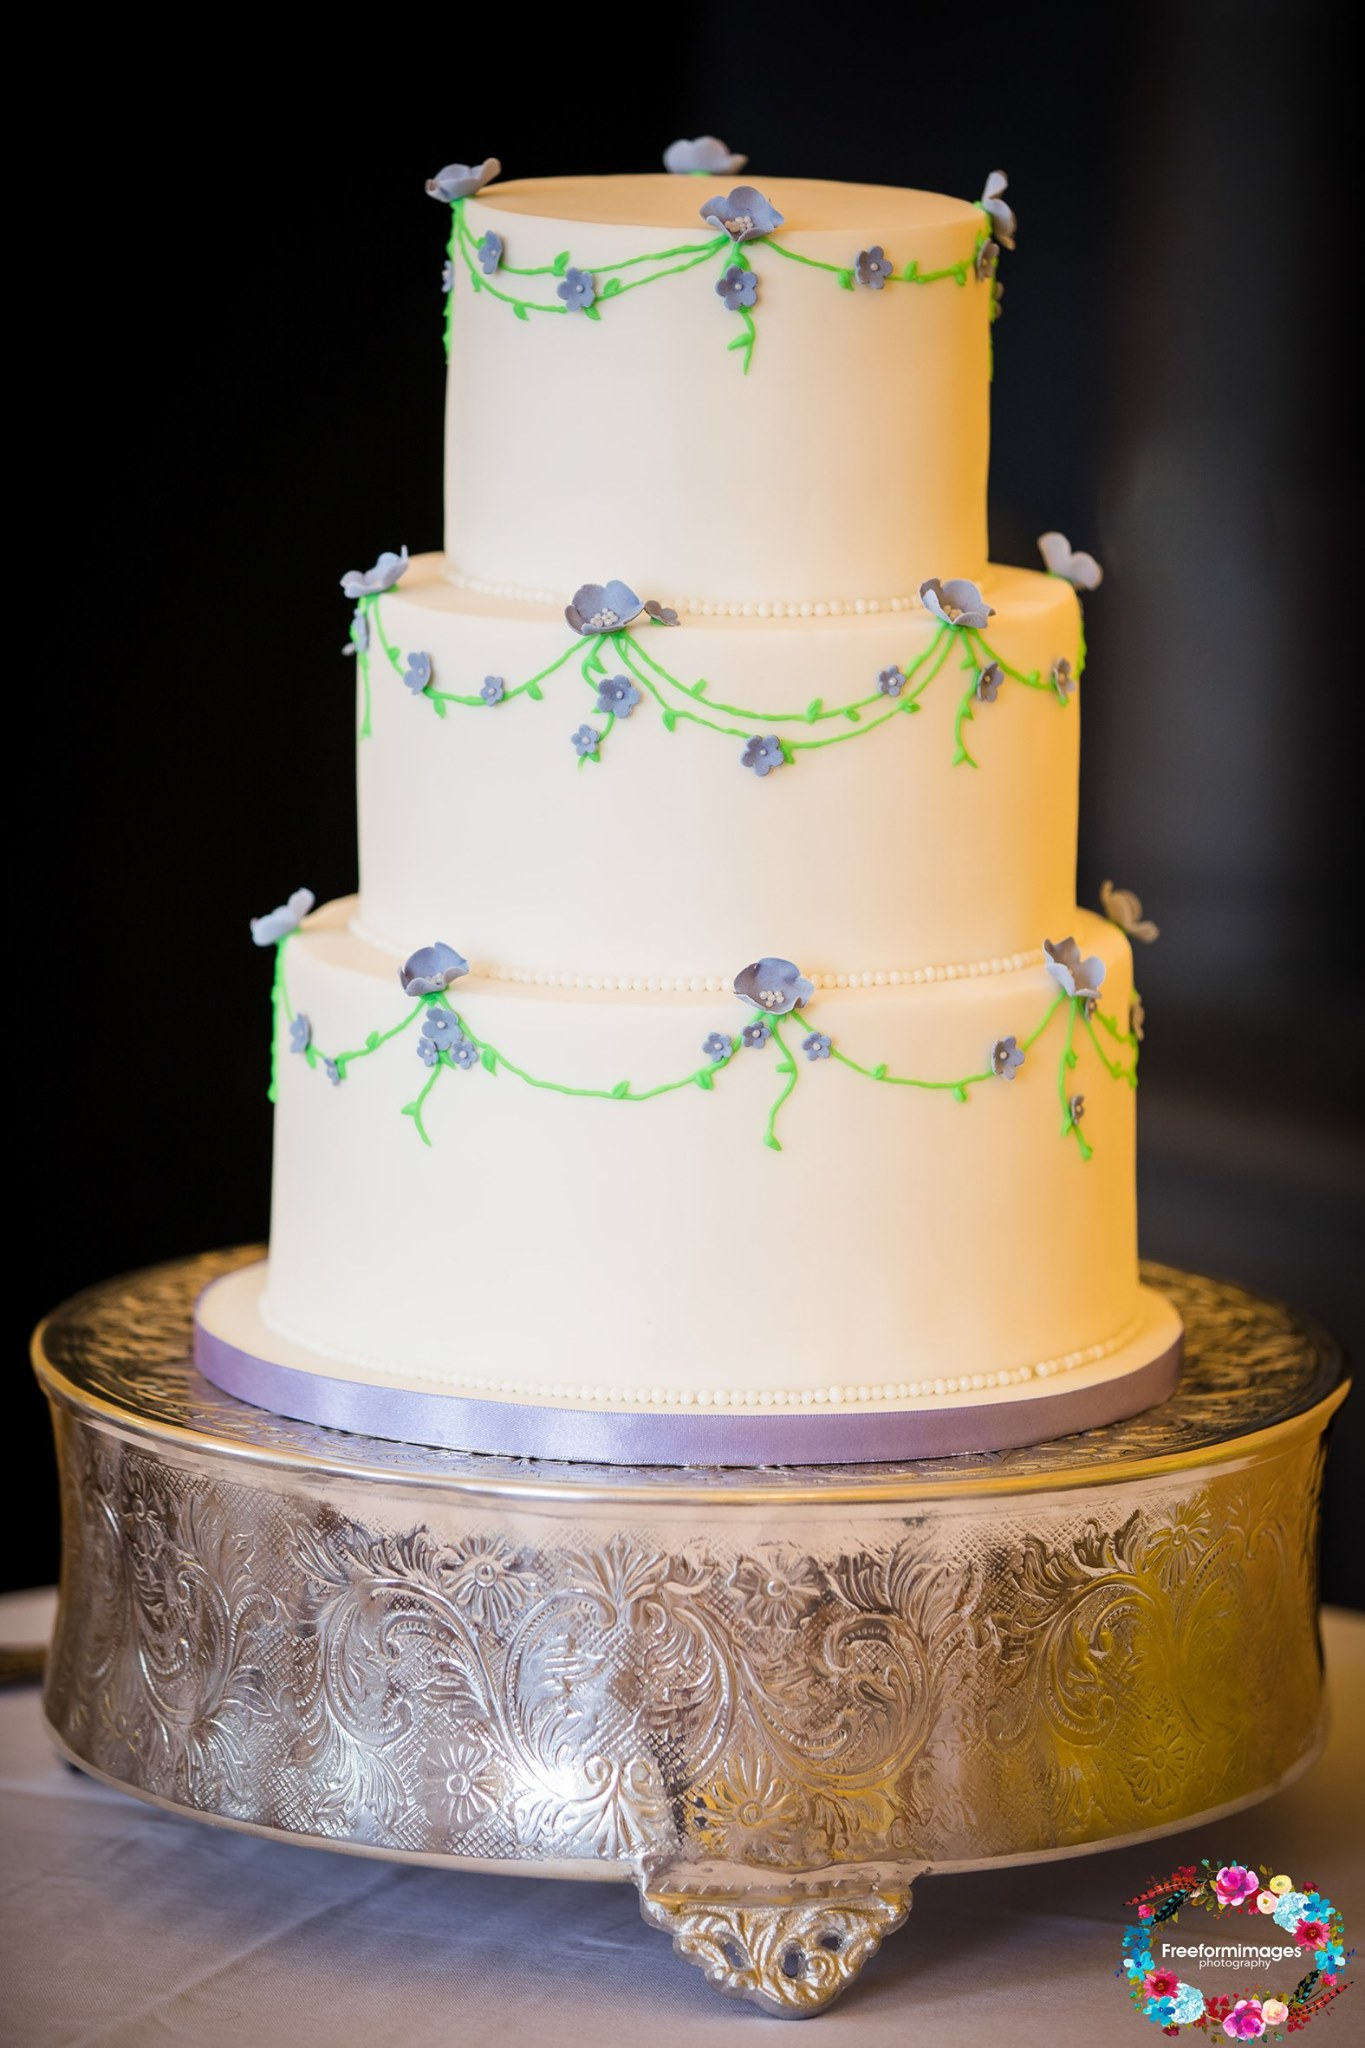 Three tier wedding cake with hand piped vines & small blue flowers